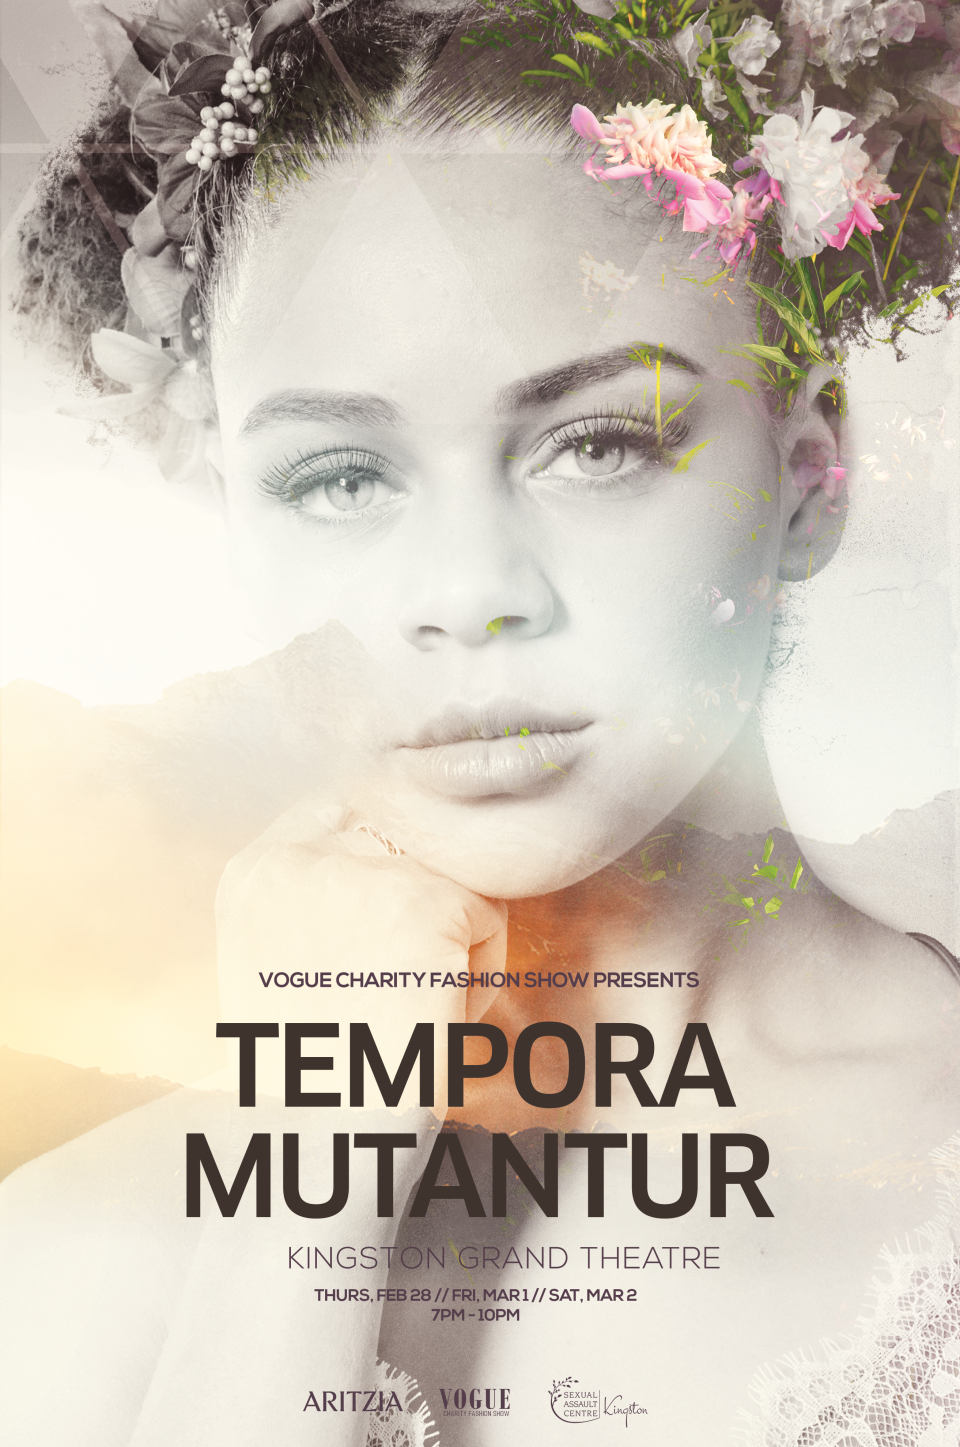 The Vogue Charity Fashion Show 2019 - Tempora Mutantur